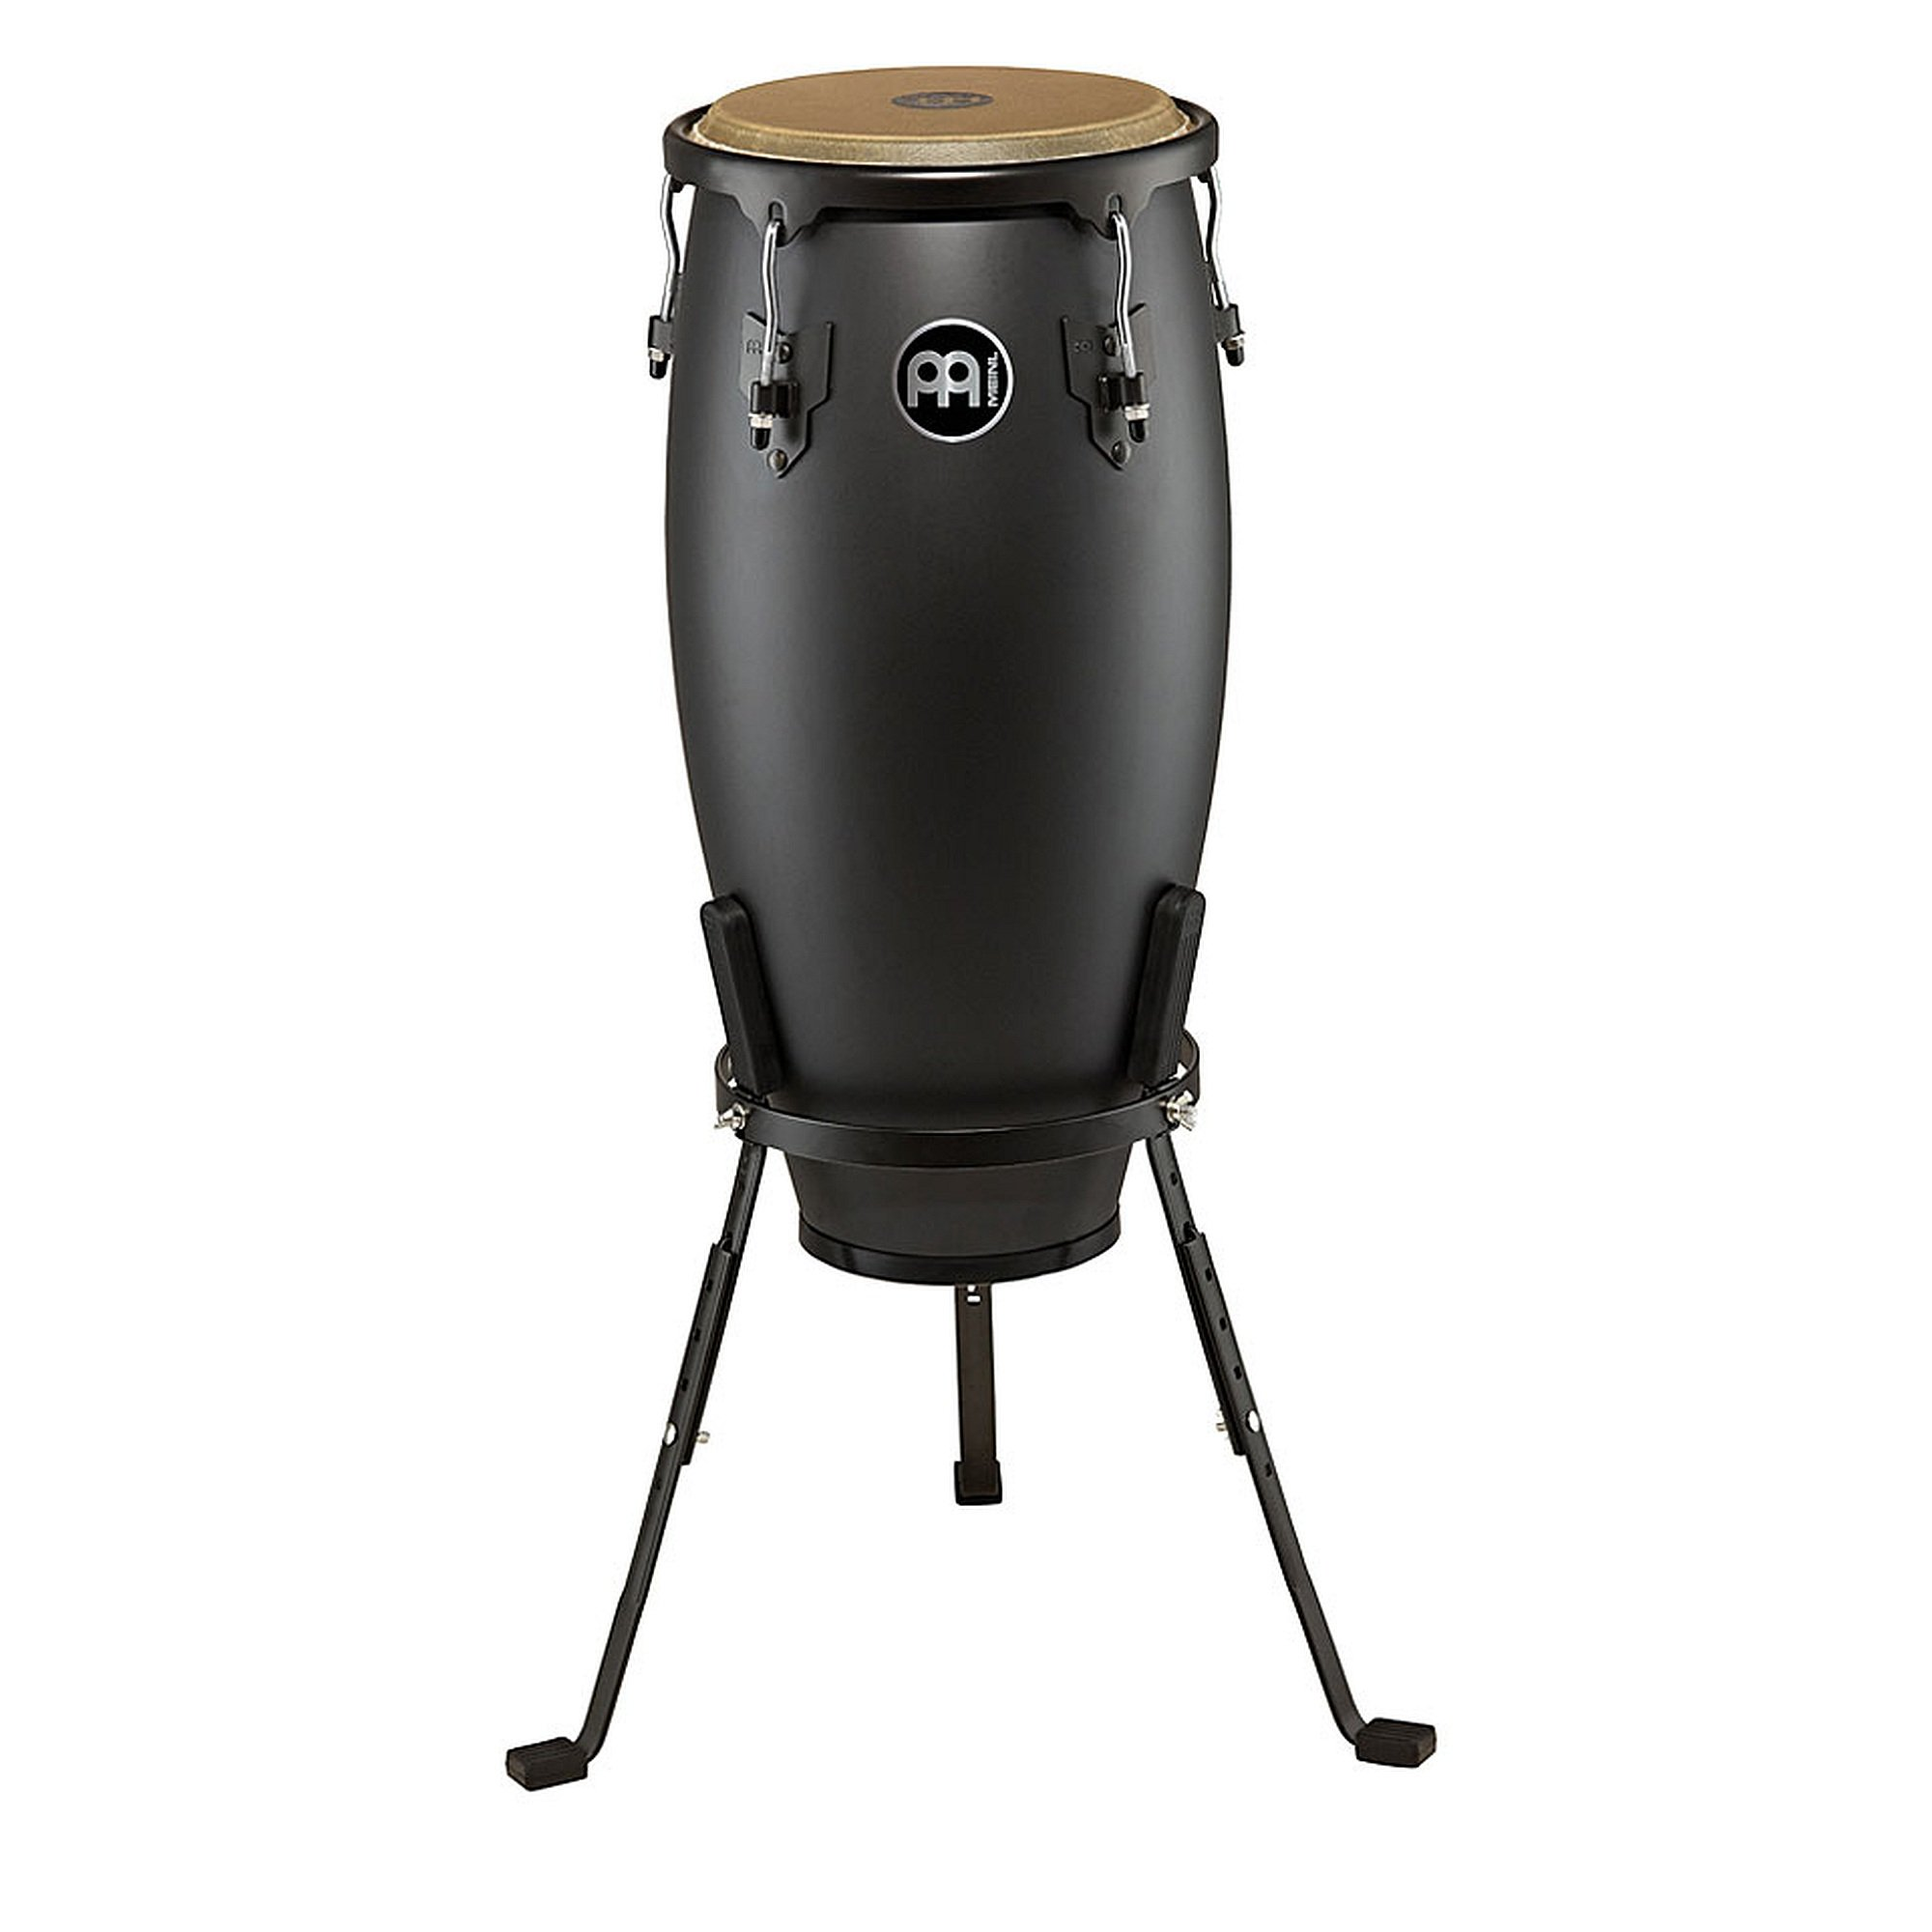 Meinl Percussion HC11PBK-M Headliner Designer Series 11-Inch Quinto with Basket Stand, Phantom Black by Meinl Percussion